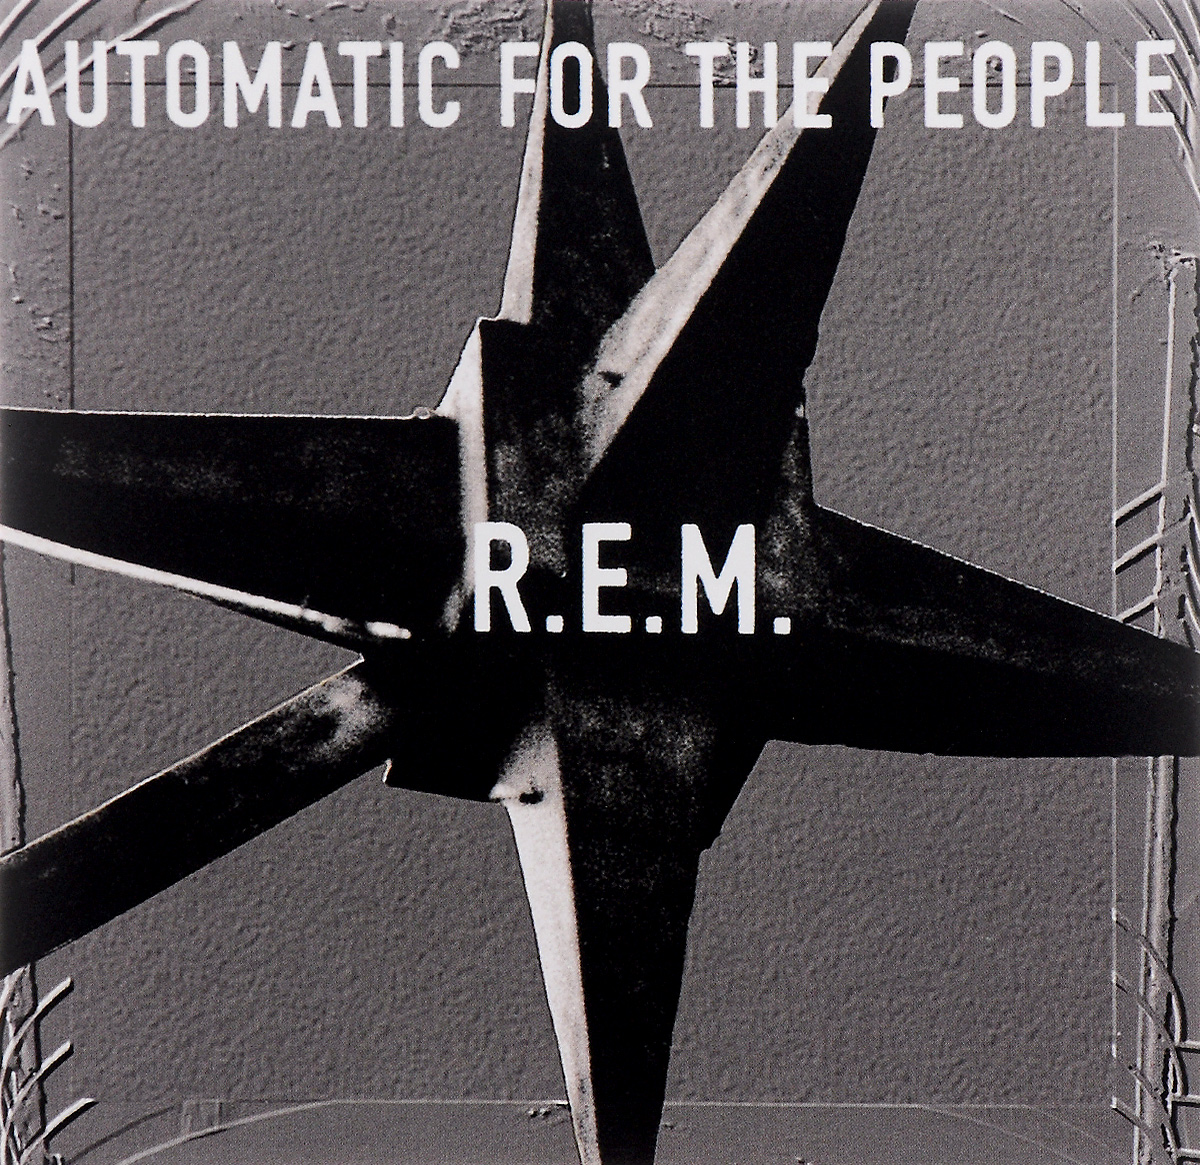 R.E.M. R.E.M. Automatic For The People automatic straws electric drinking water pump straw group